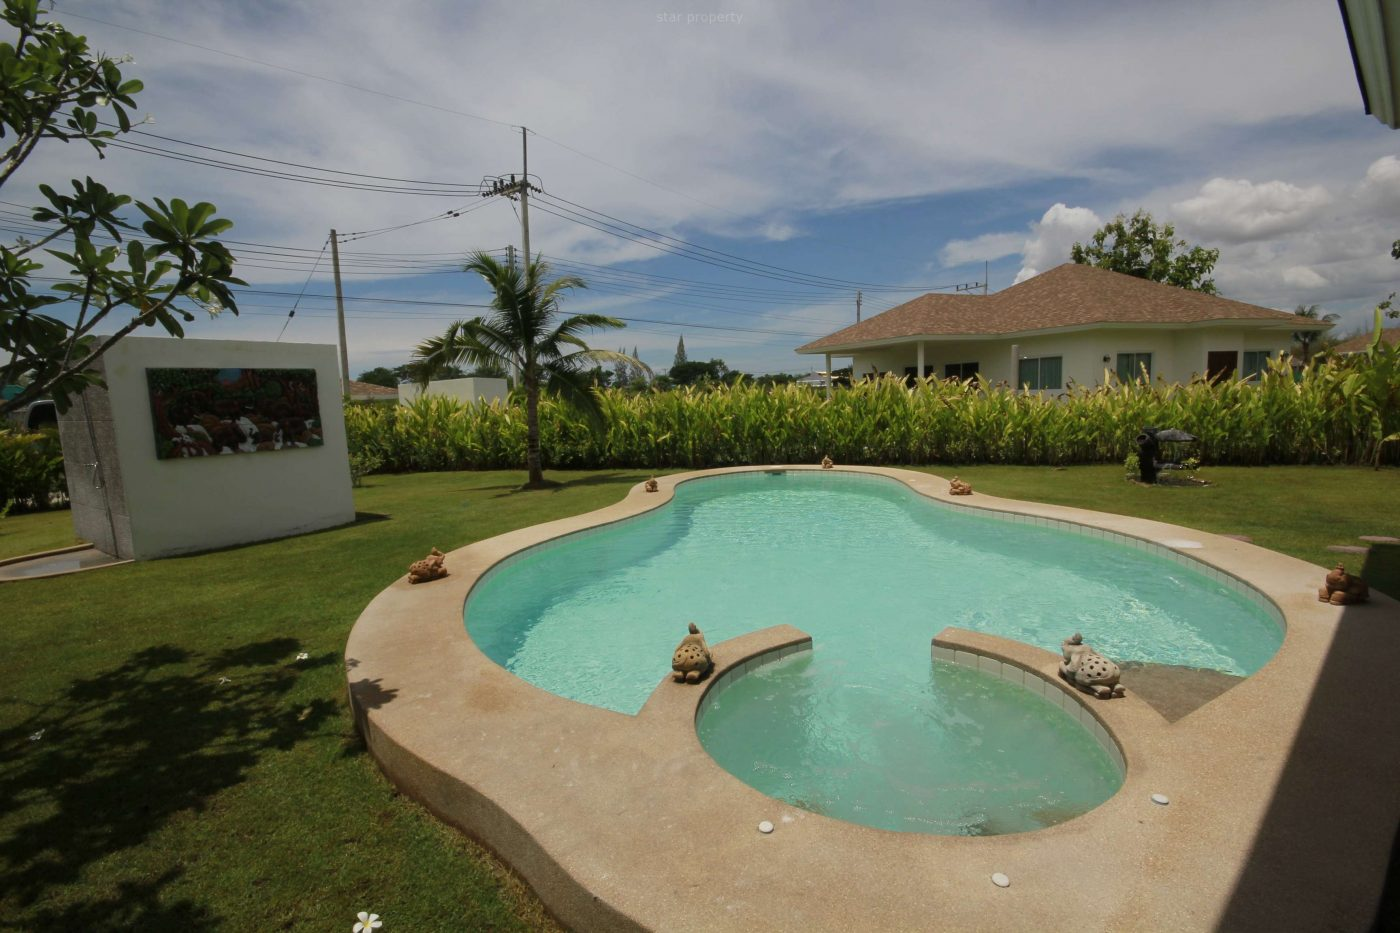 Pool Villa for Rent near Golf course at Groove Villas